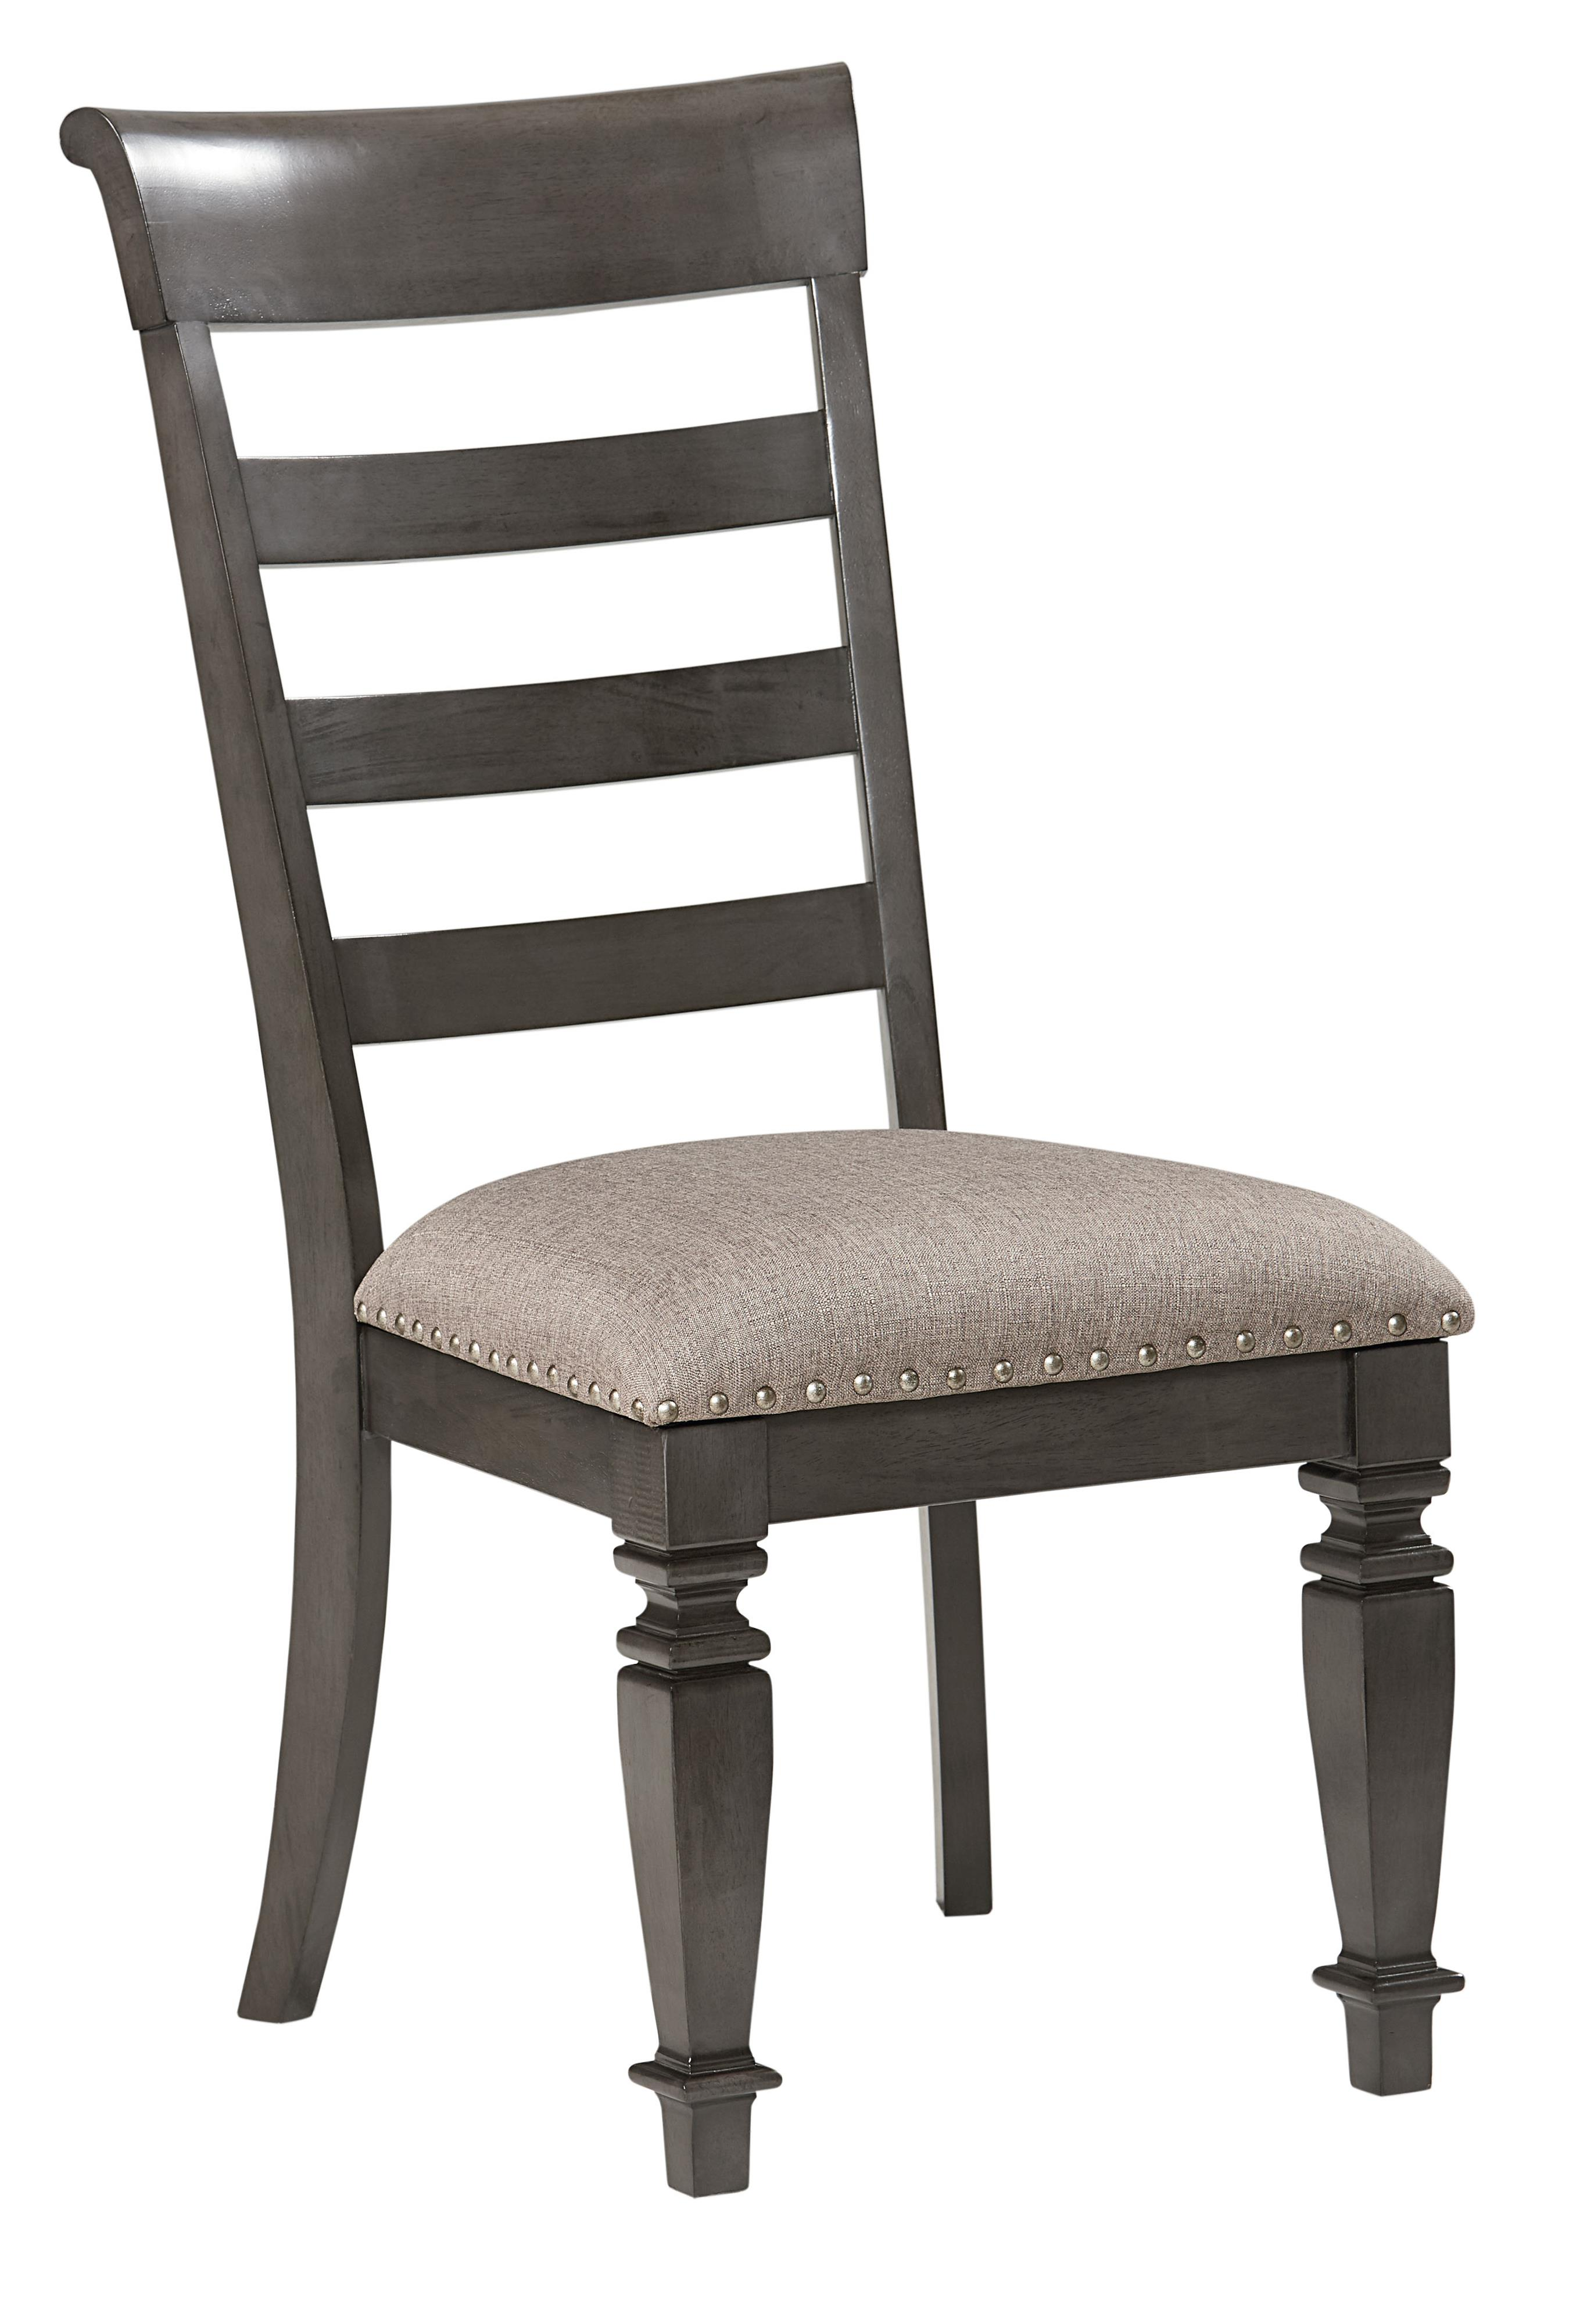 Traditional Upholstered Dining Chairs ~ Standard furniture garrison traditional upholstered side